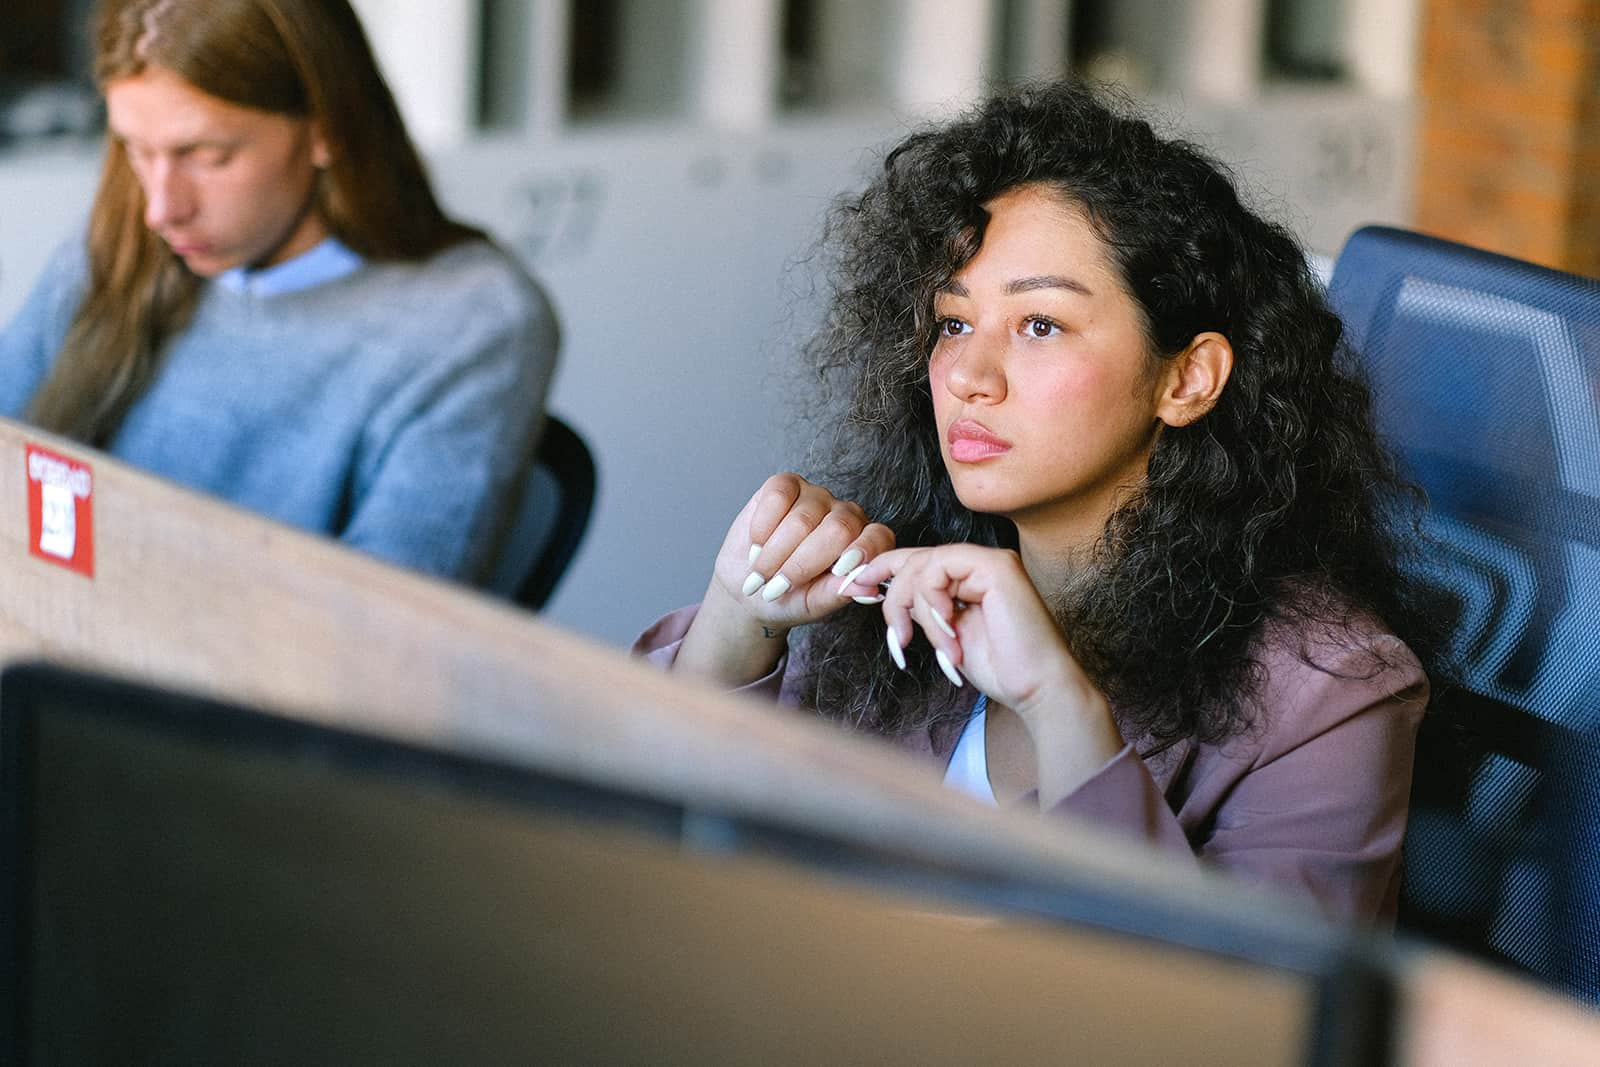 serious woman sitting at workplace and looking in front of her